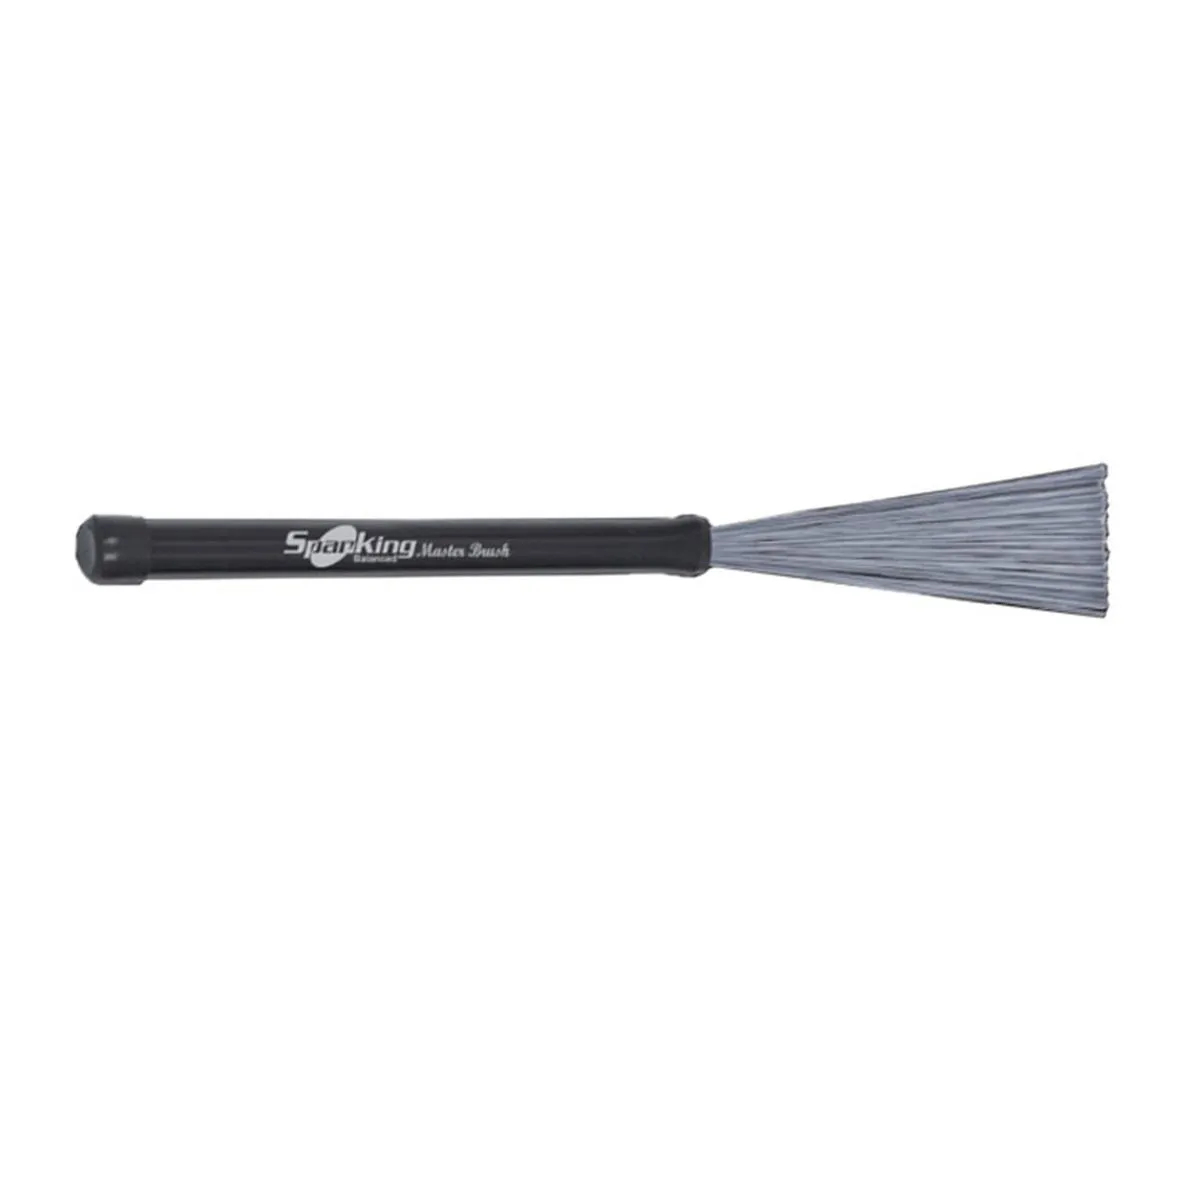 Baqueta Vassourinha Spanking Master Brush 0,60mm Preto